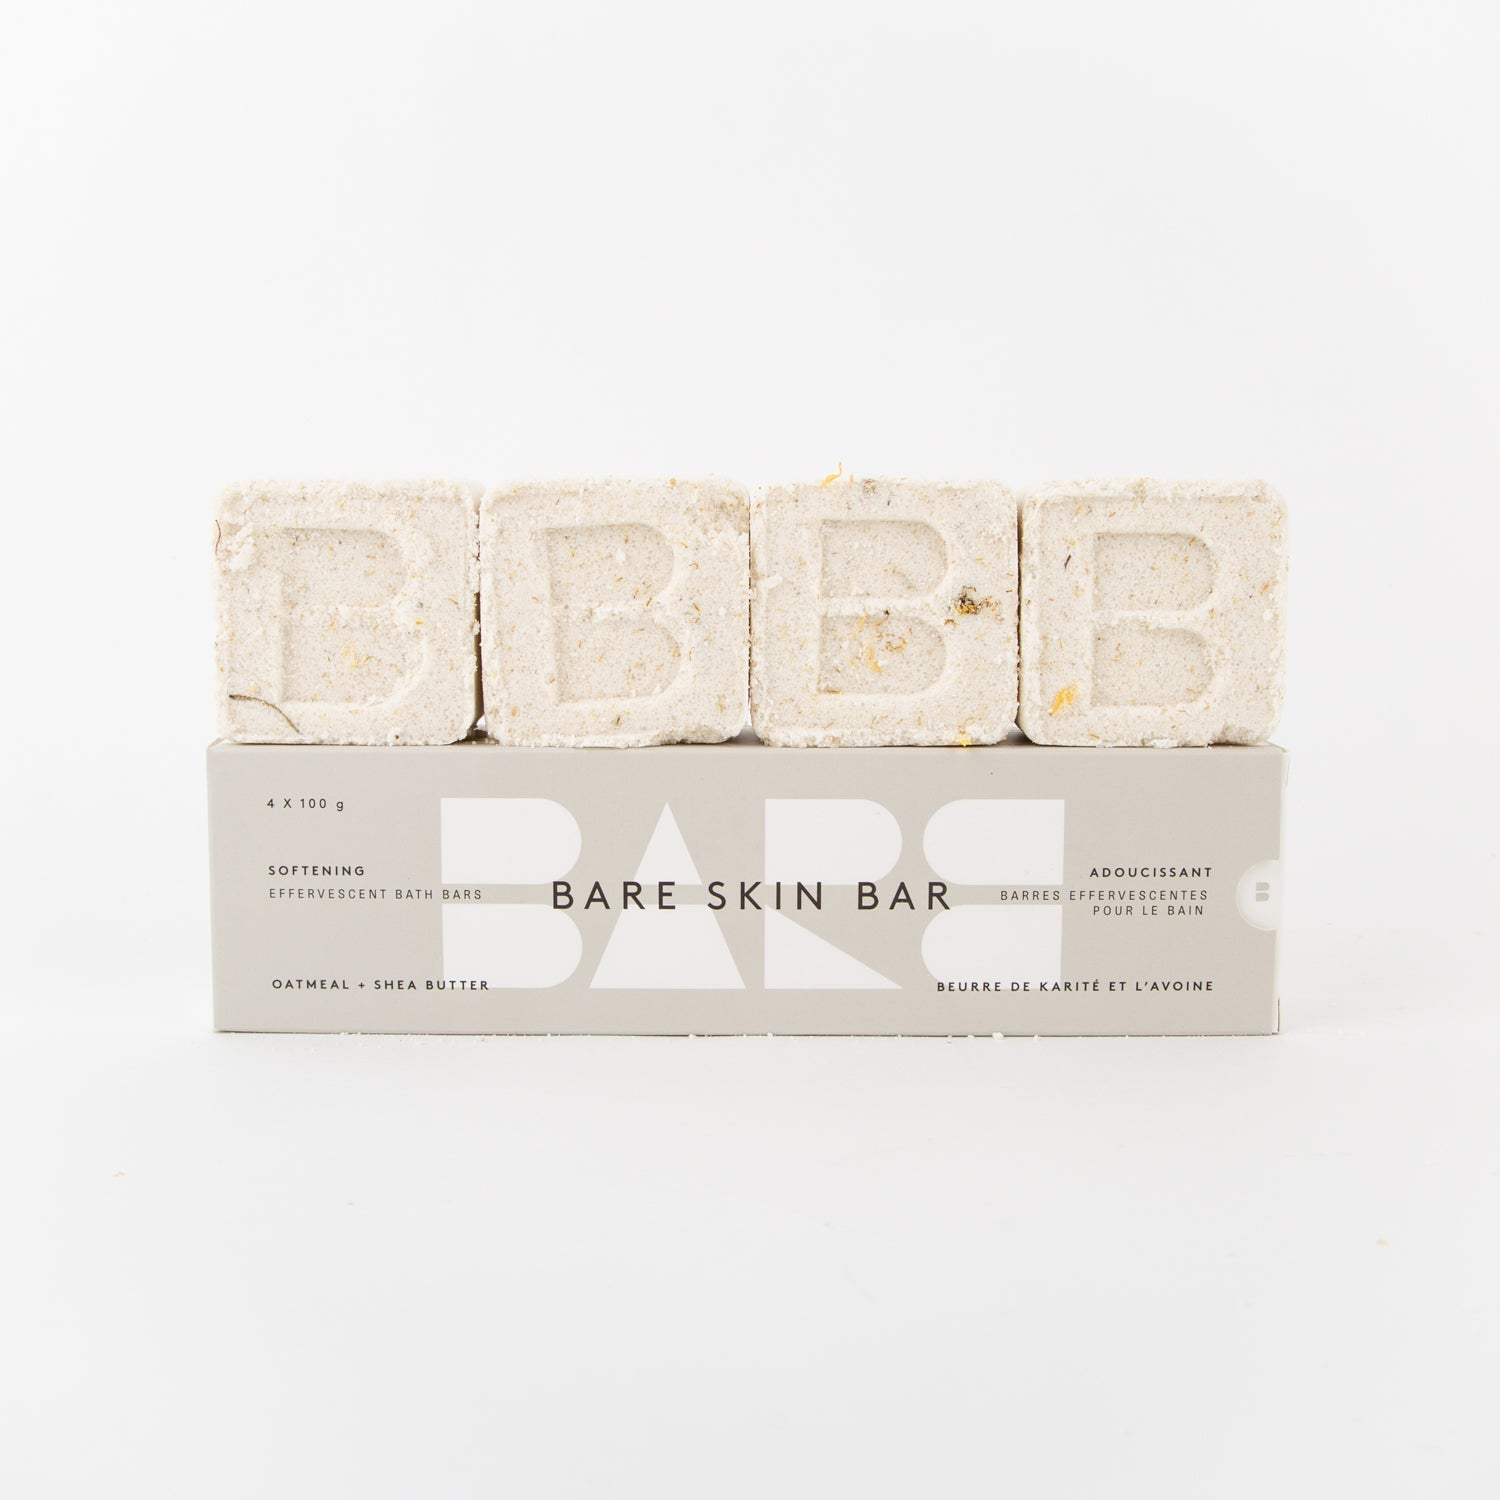 shea butter softening bath bar pack